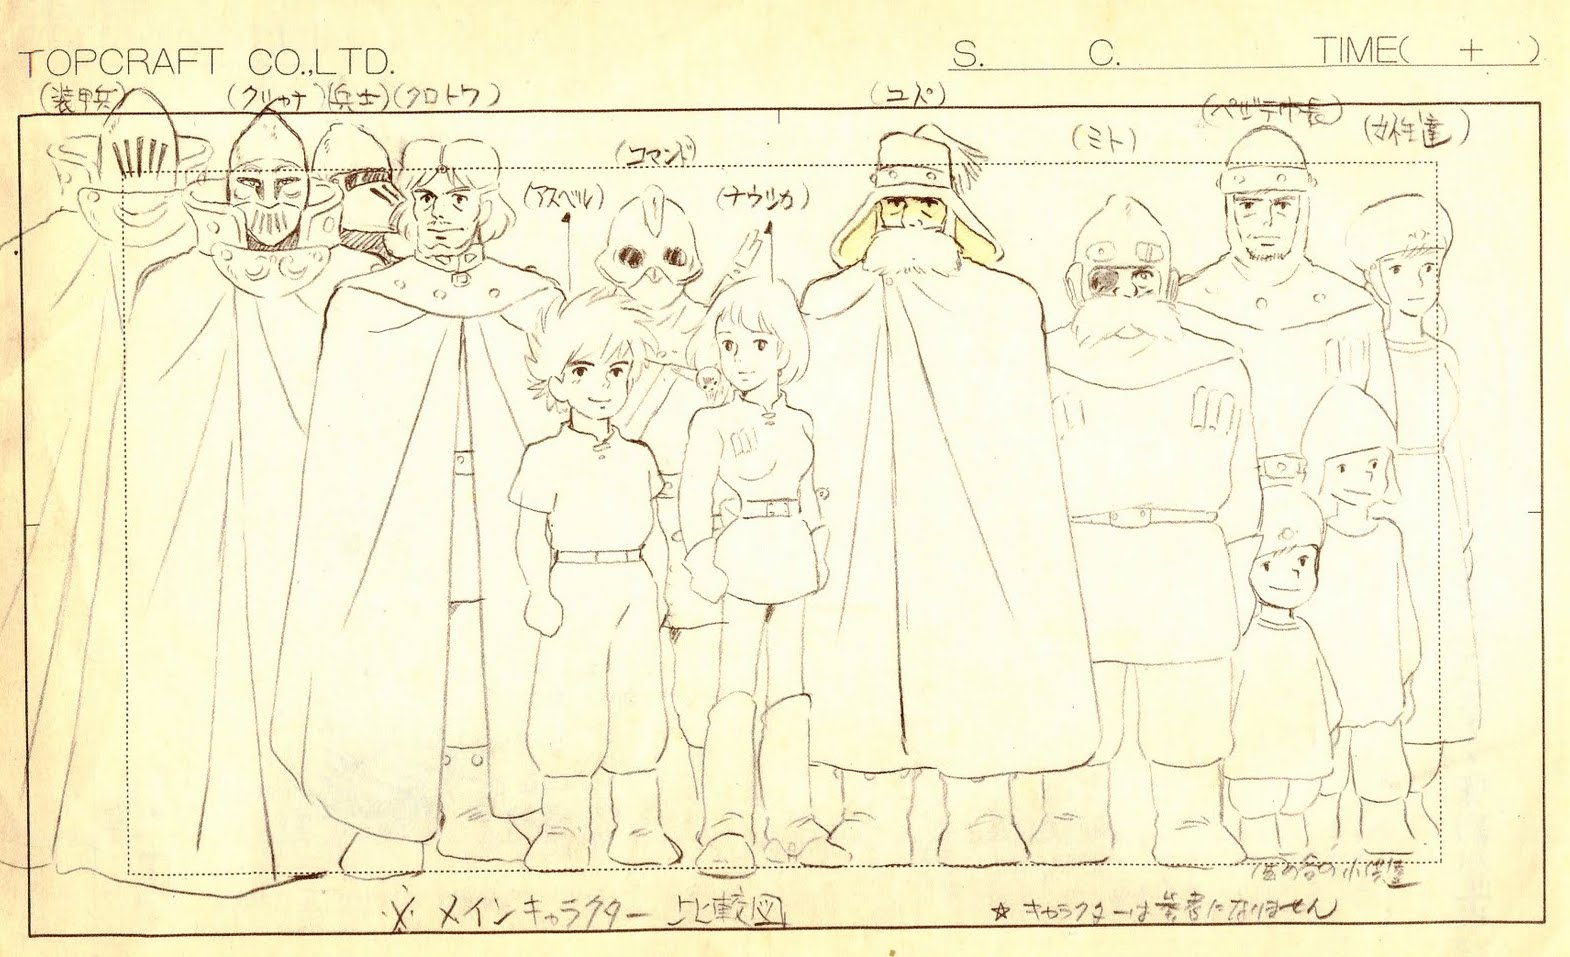 nausicaa_of_the_valley_of_the_wind_concept_art_character_30.jpg